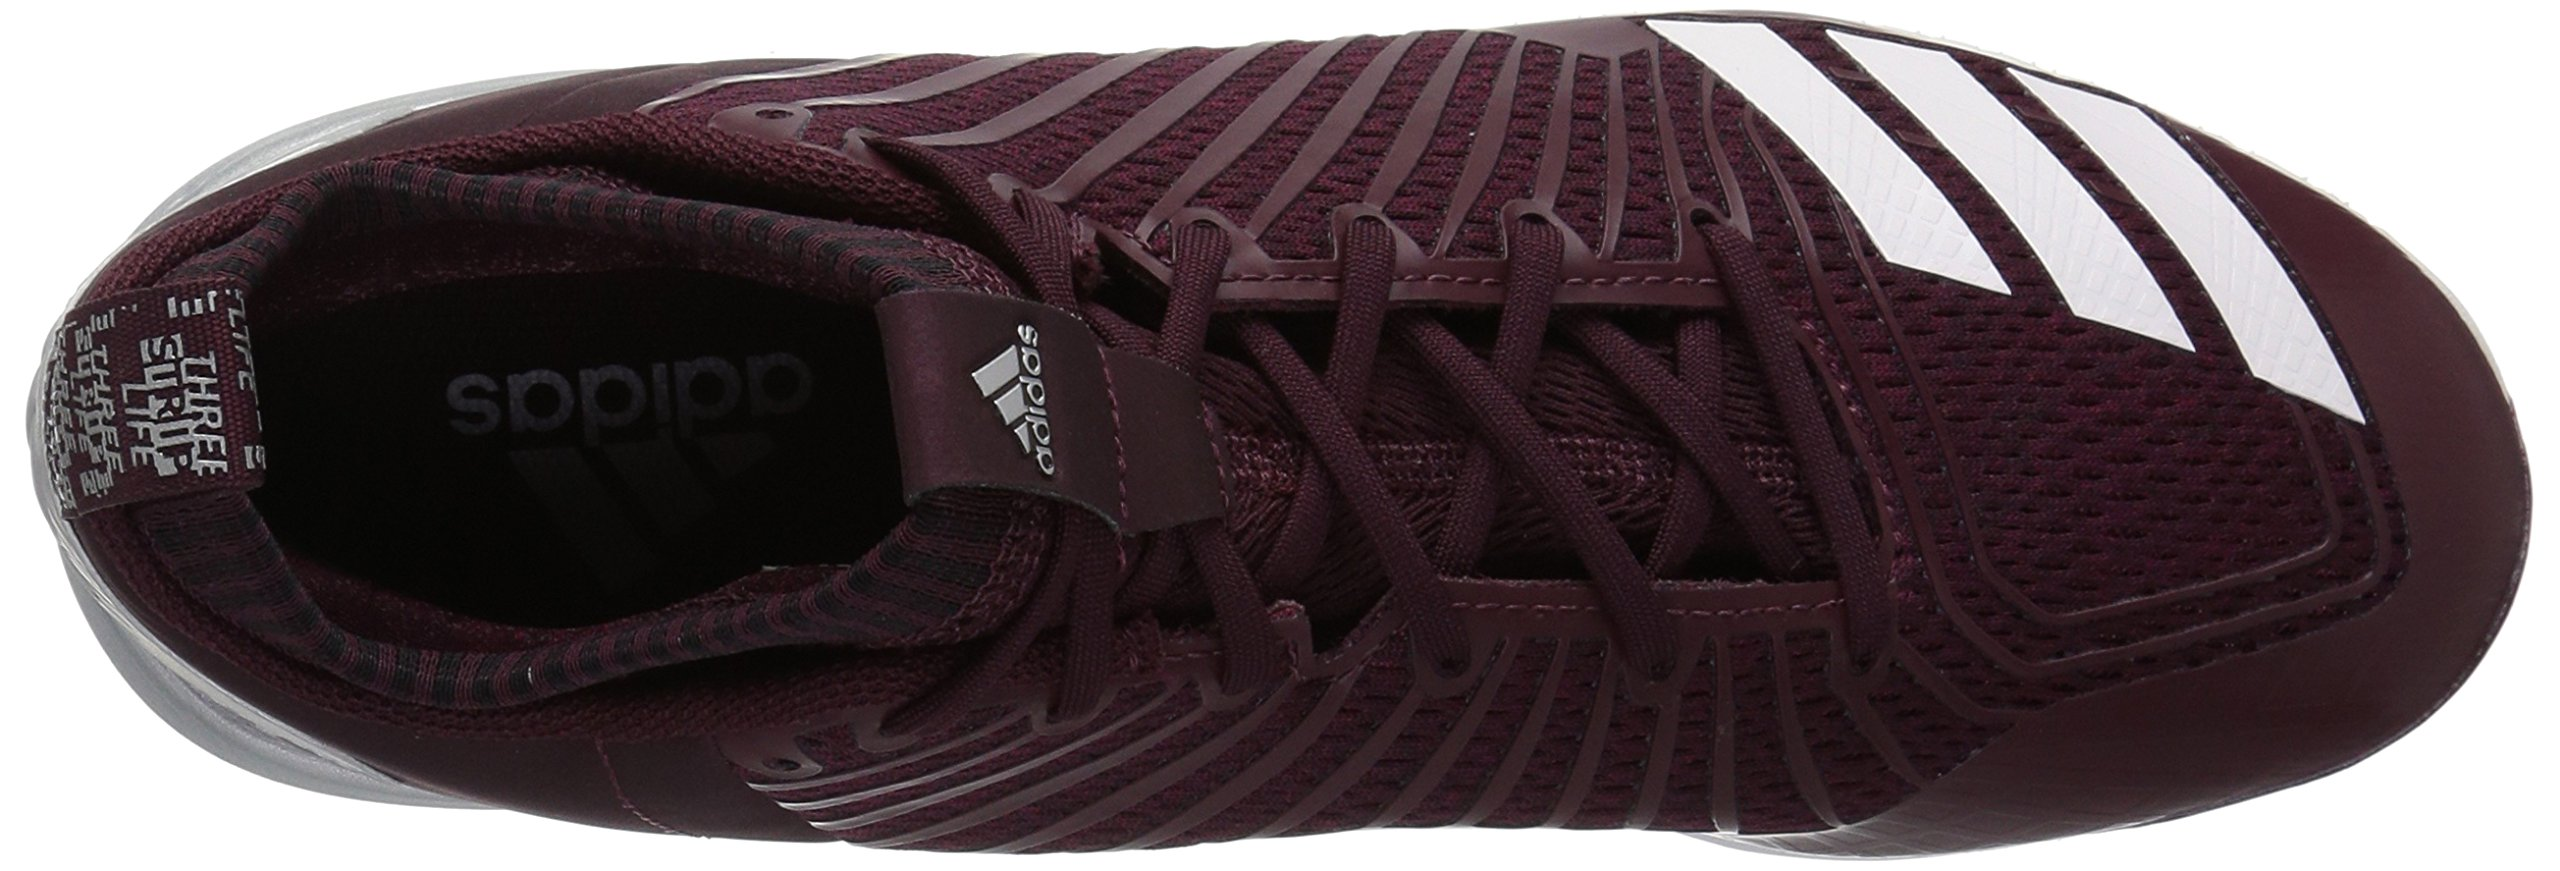 adidas Men's Freak X Carbon Mid Baseball Shoe, Maroon/White/Metallic Silver, 7.5 Medium US by adidas (Image #8)